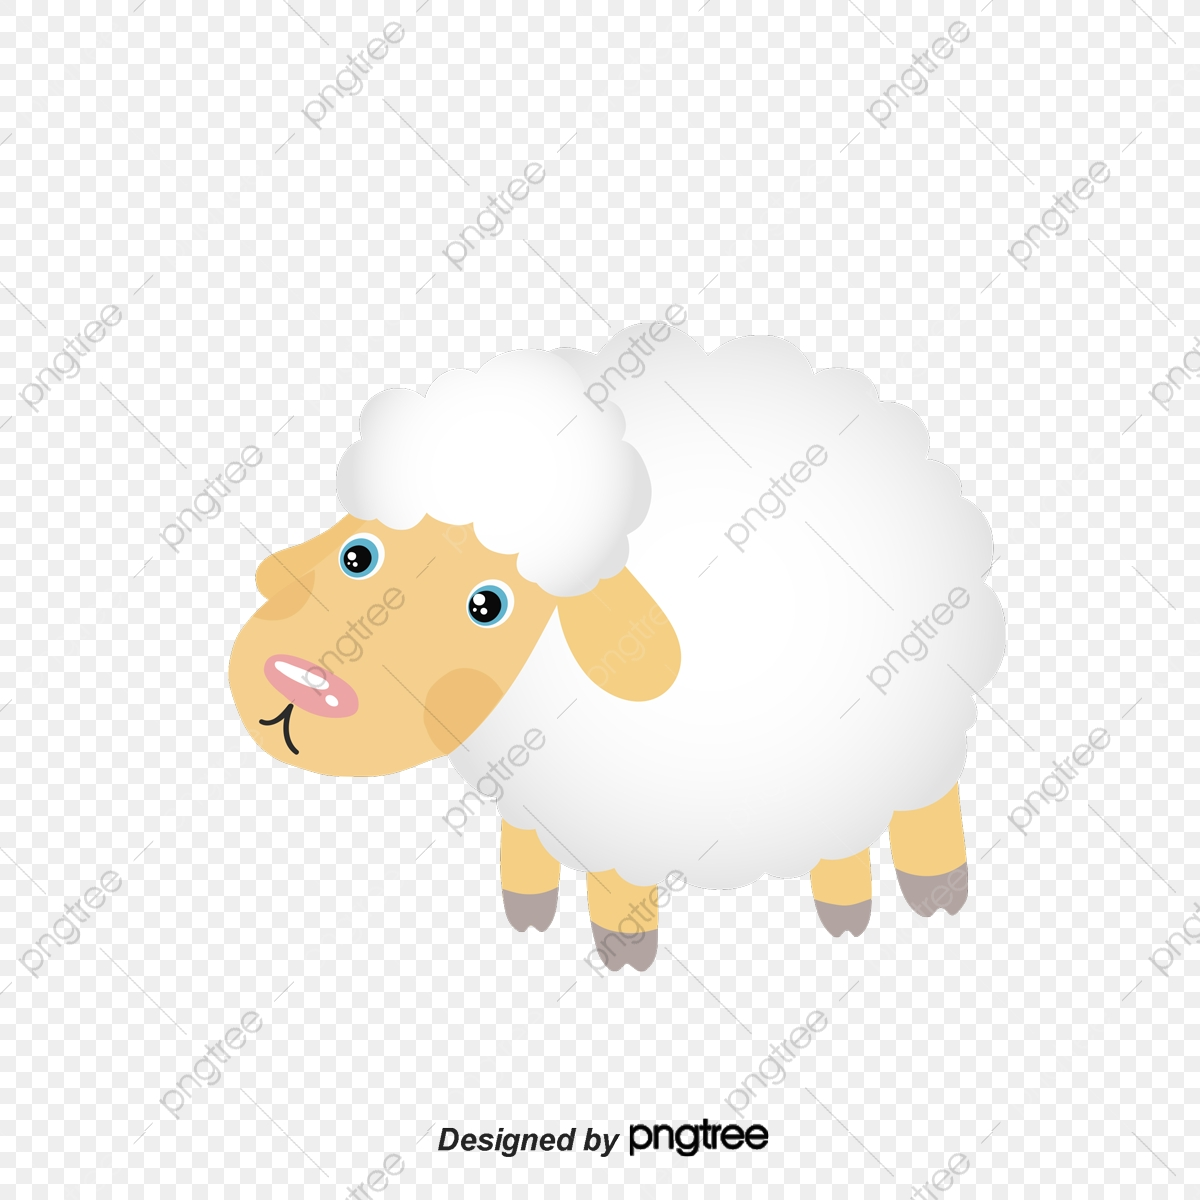 le vecteur de pince de mouton maternelle d u00e9coration animal